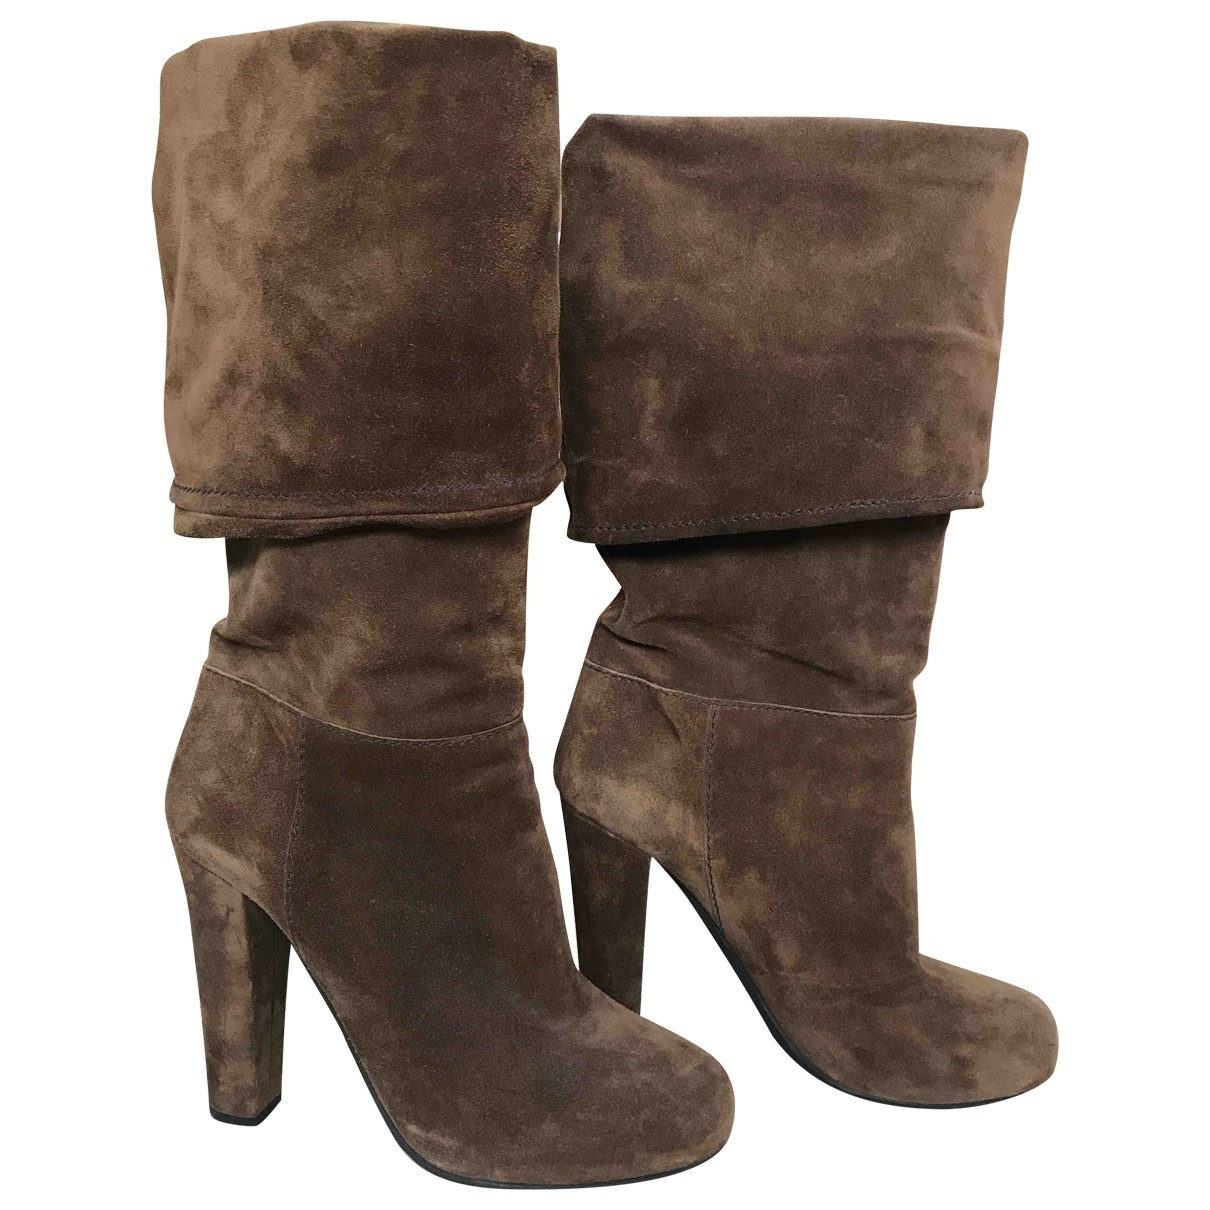 Carshoe \N Brown Suede Boots for Women 38 EU